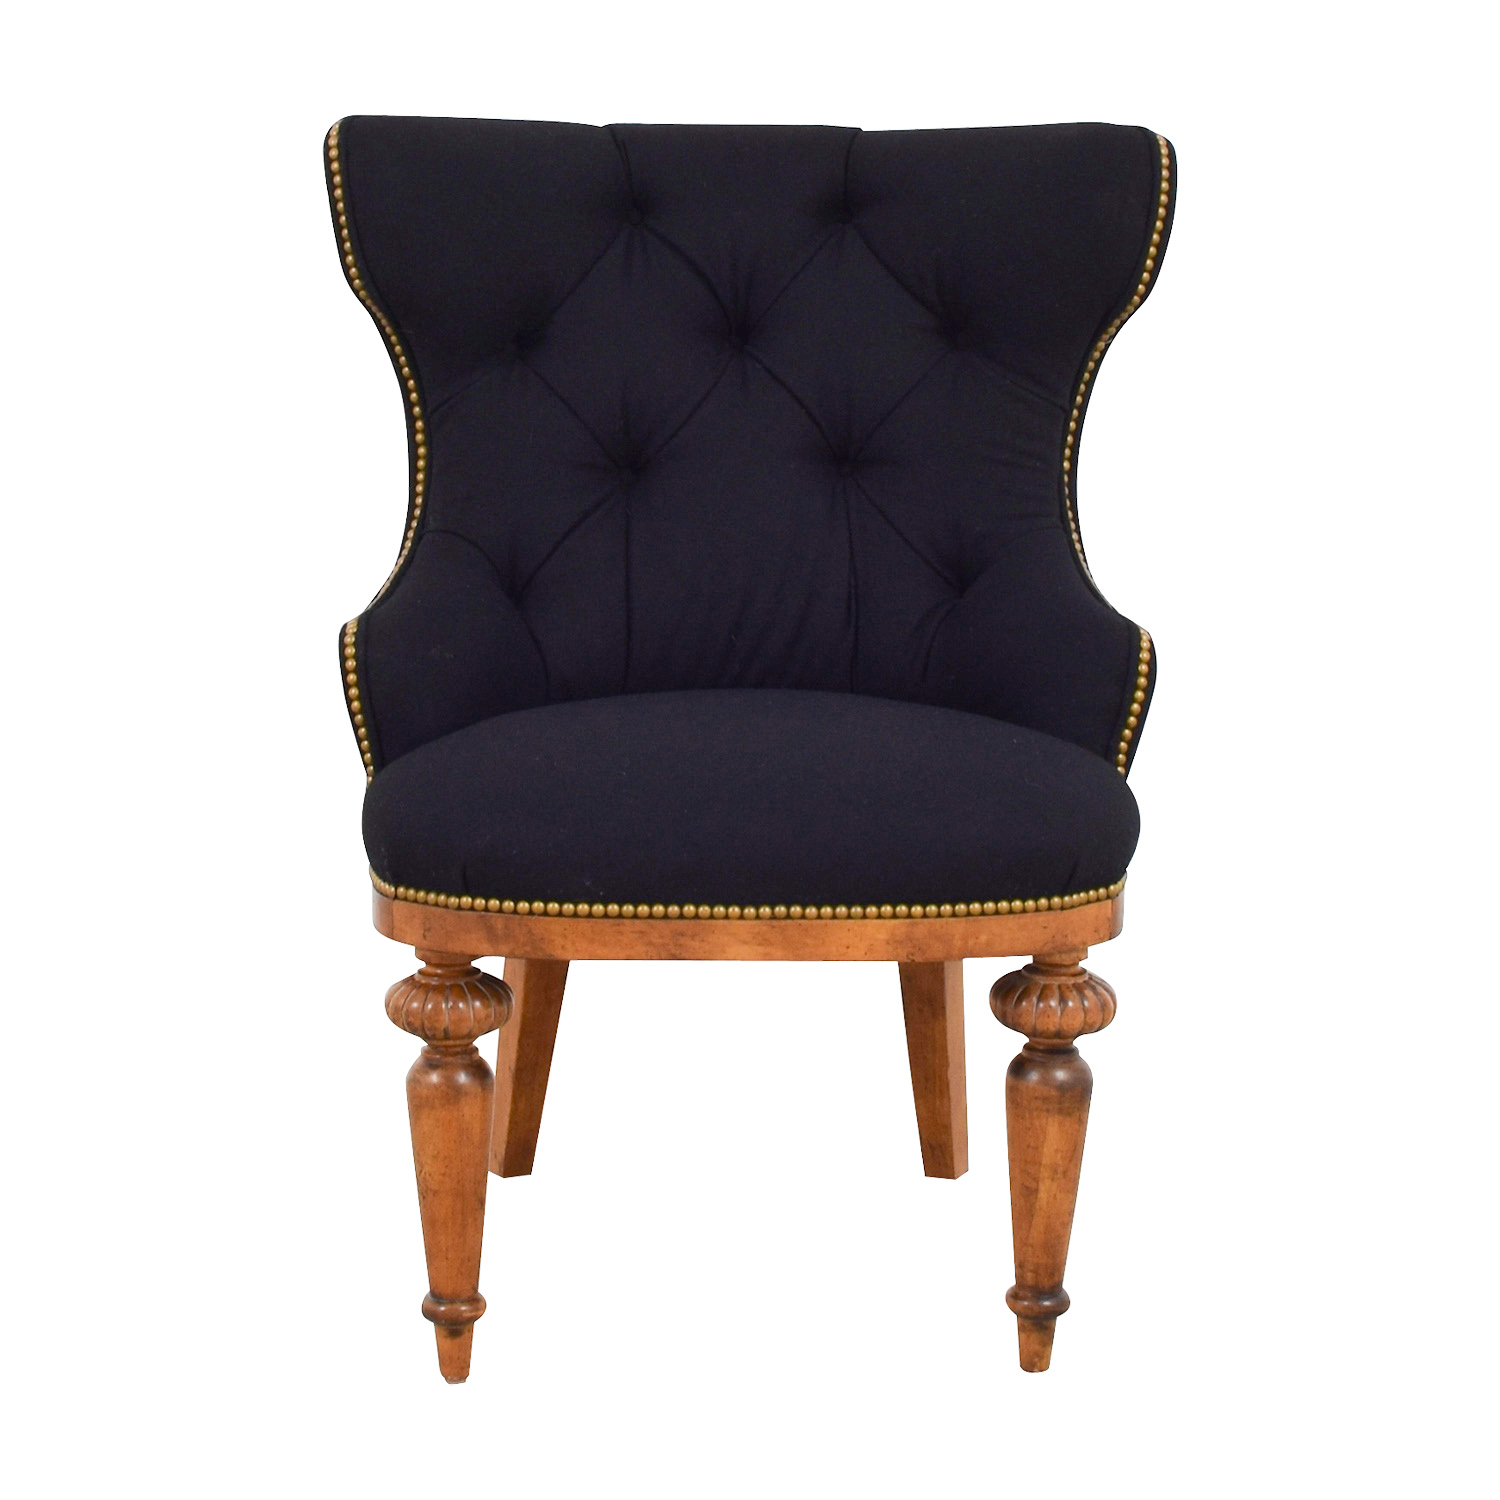 Fine 87 Off Furniture Masters Furniture Masters Black Tufted Nailhead And Wood Accent Chair Chairs Ibusinesslaw Wood Chair Design Ideas Ibusinesslaworg